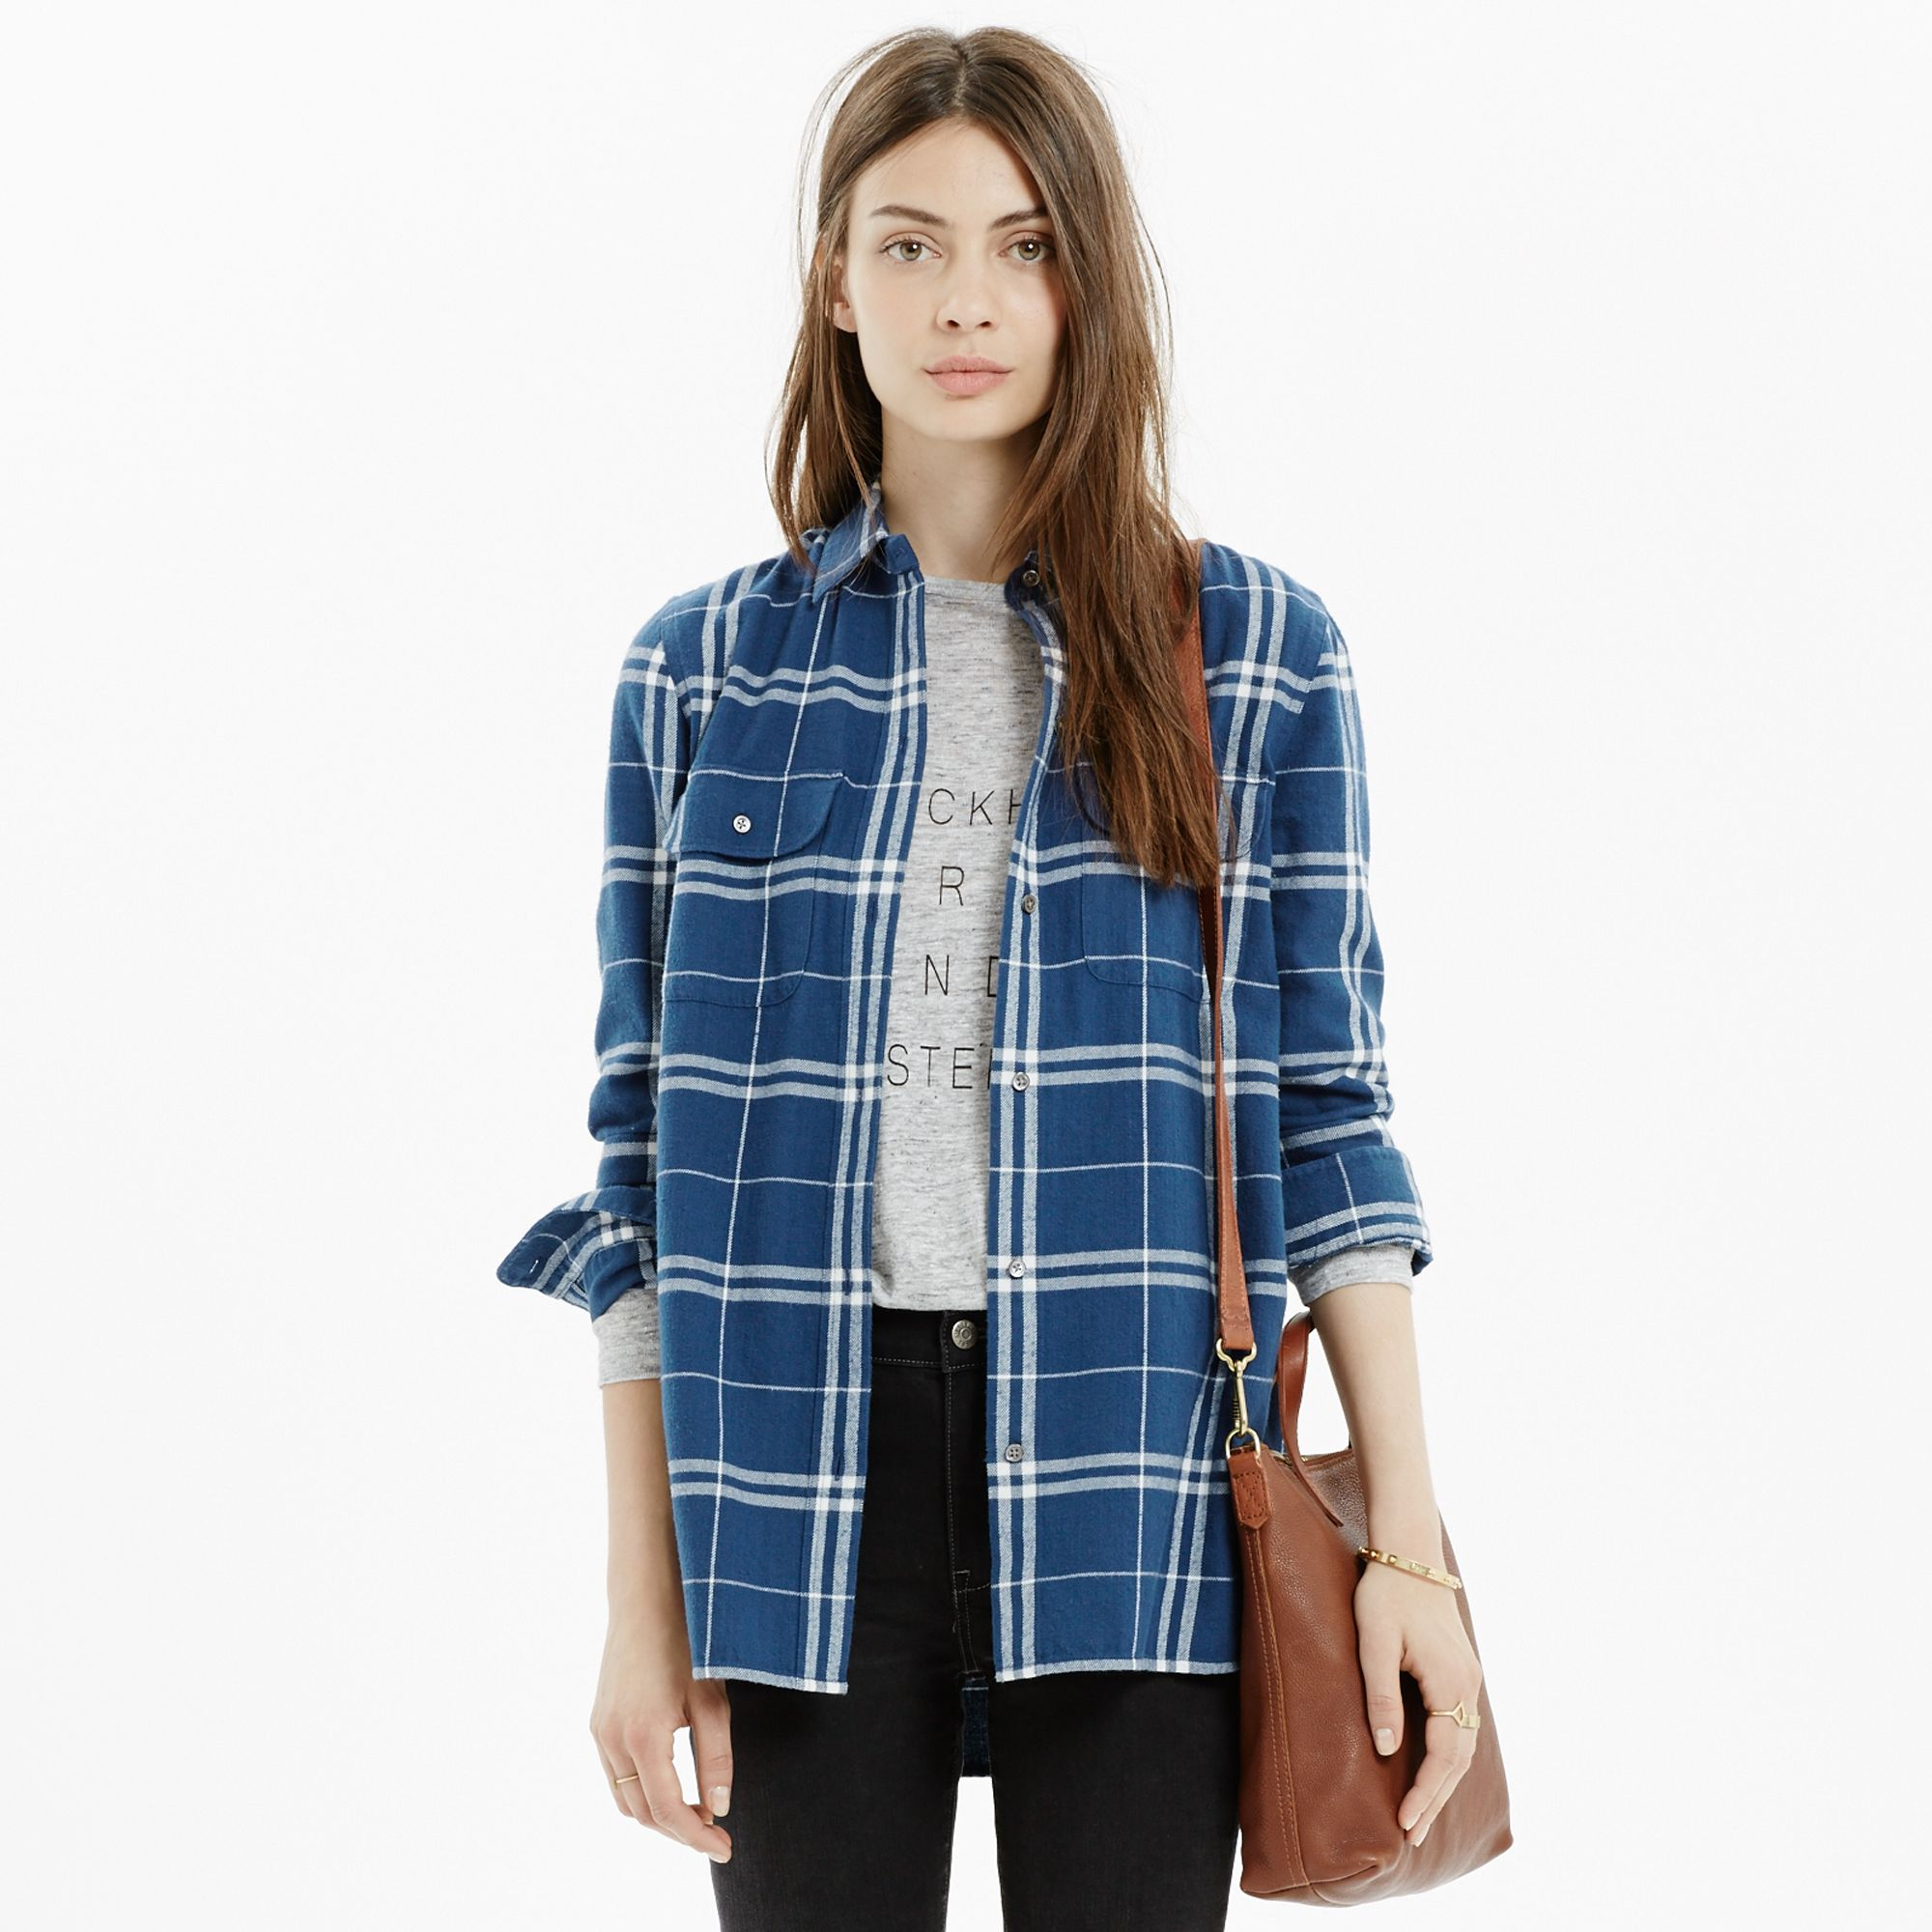 b678262b86e Lyst - Madewell Flannel Ex-Boyfriend Shirt In Aurora Plaid in Blue